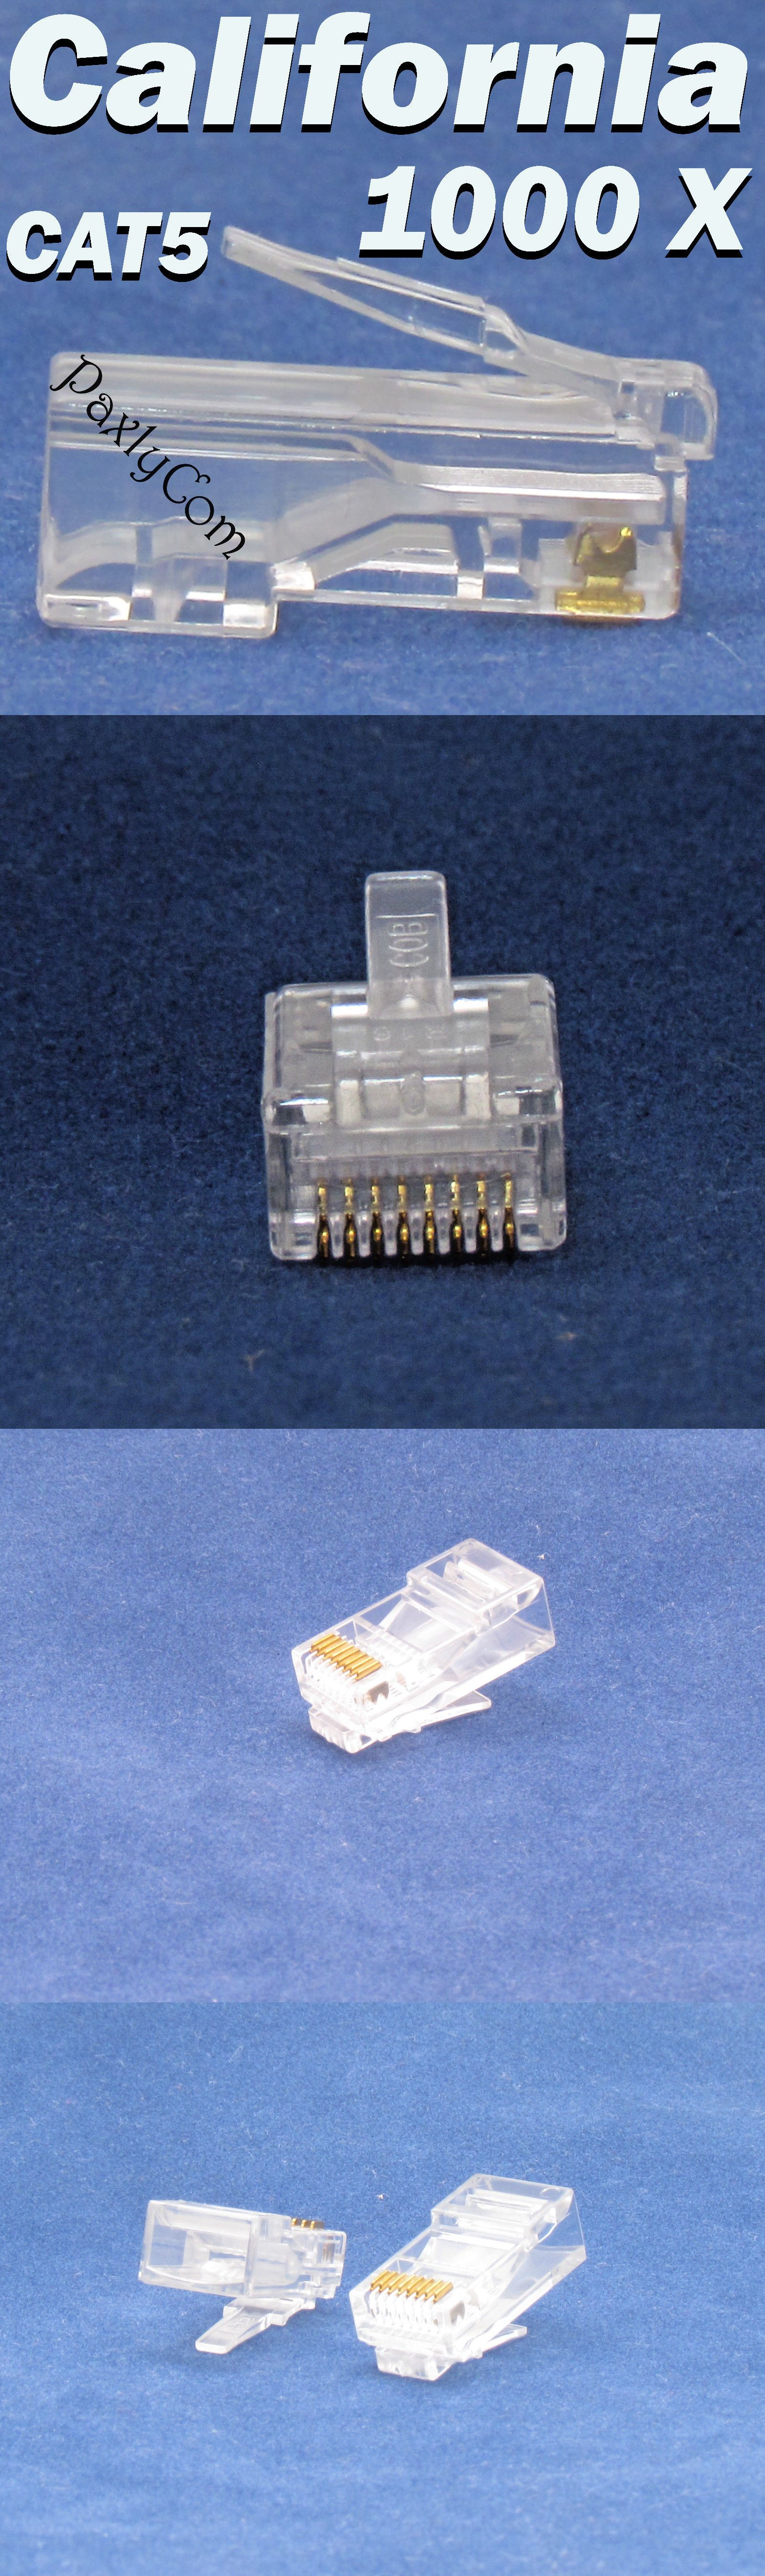 plugs jacks and wall plates 67279 1000 x rj45 end plug cat5 cat5e modular lan connector internet ethernet cable 8p buy it now only 17 35 on ebay  [ 1600 x 5389 Pixel ]